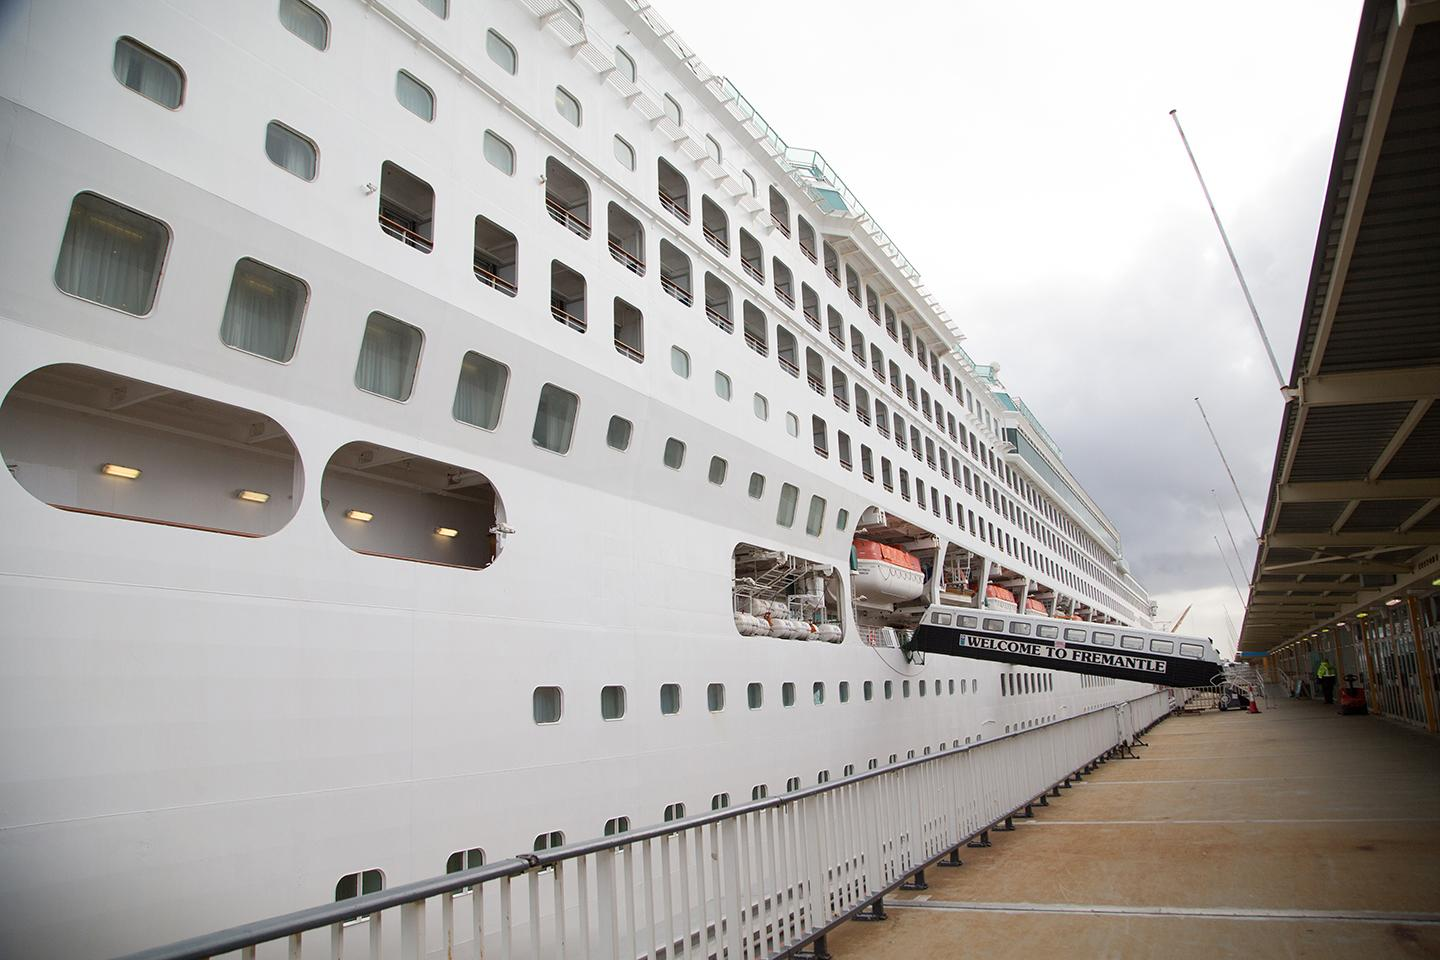 Holiday Planet sold to UK cruise company